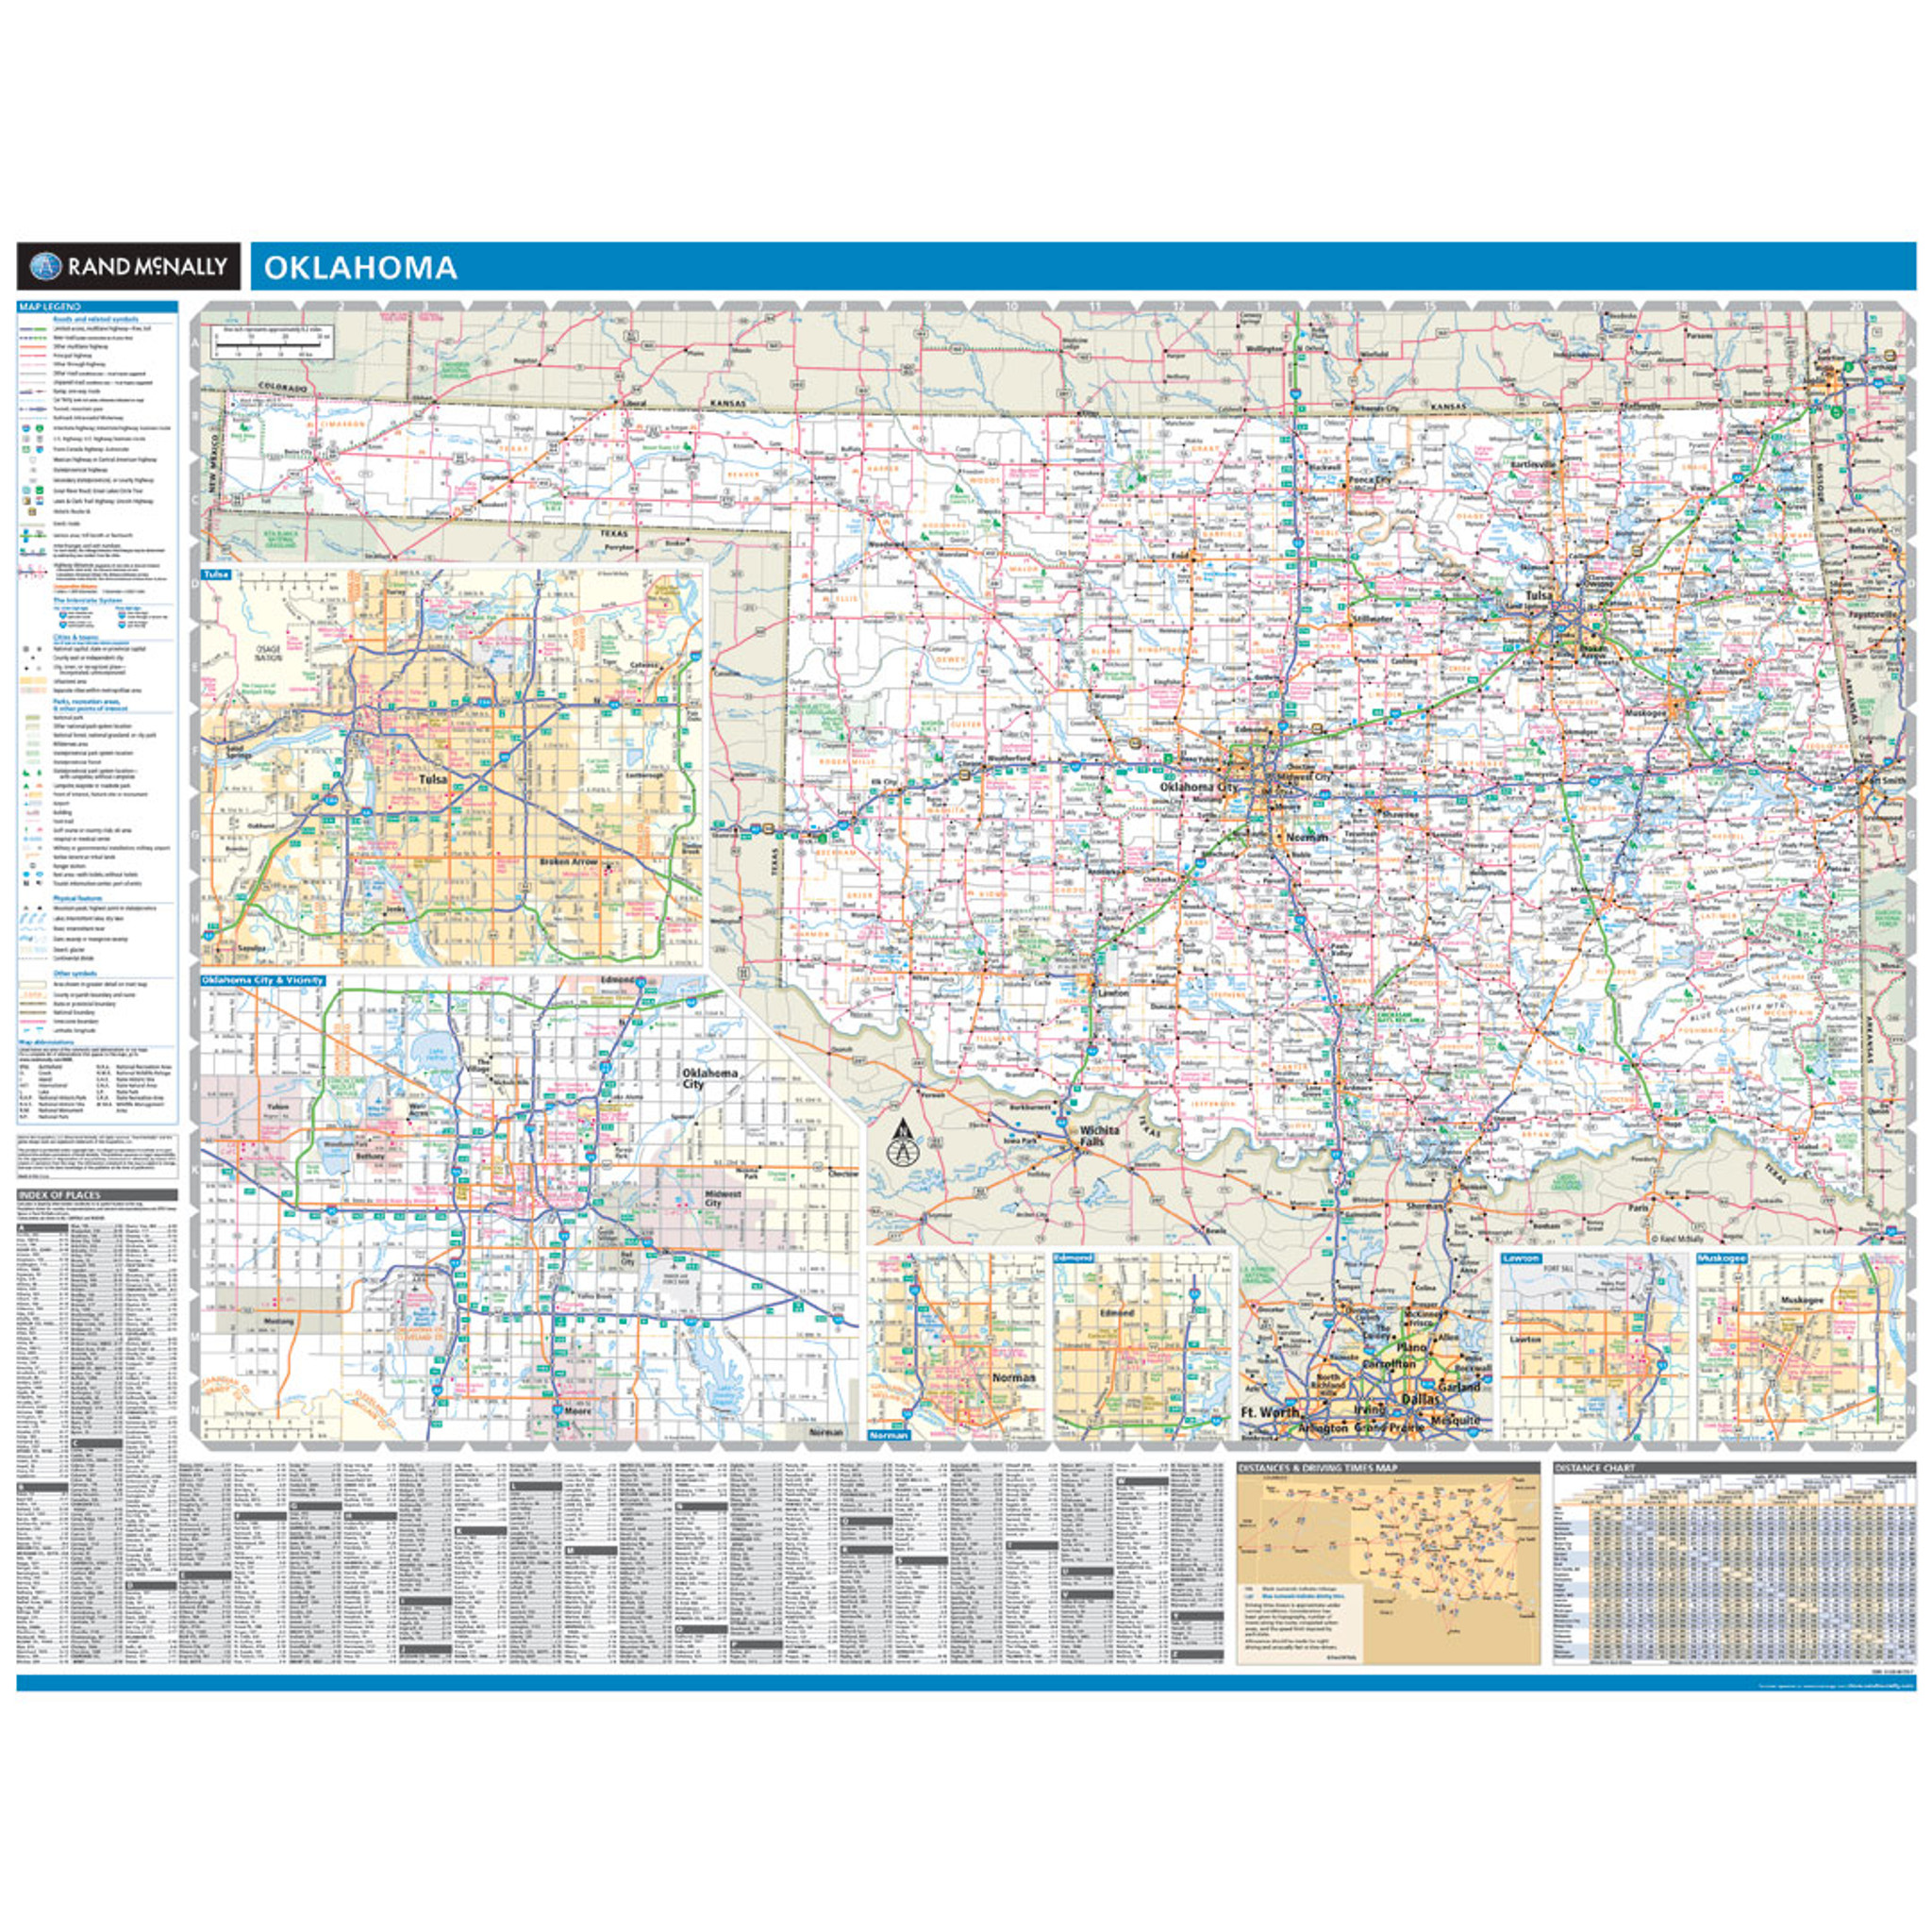 State Map Oklahoma.Rand Mcnally Oklahoma State Wall Map